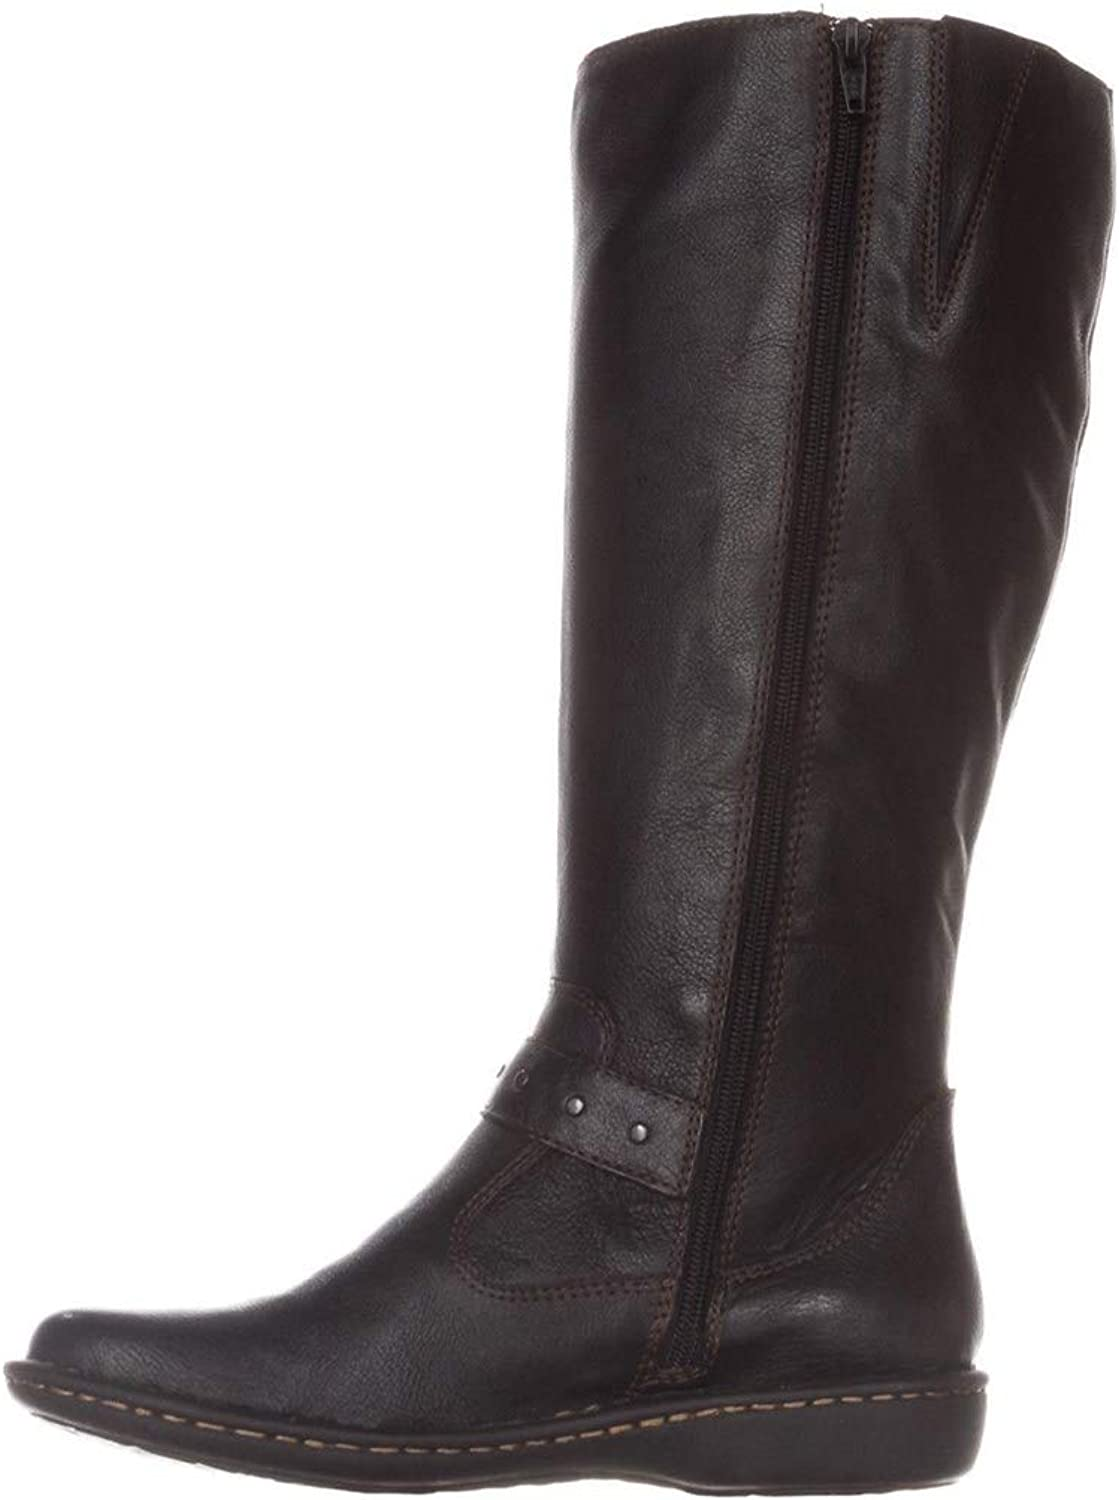 B.O.C. Womens Austin Wide Calf Leather Closed Toe Knee High, Black, Size 11.0